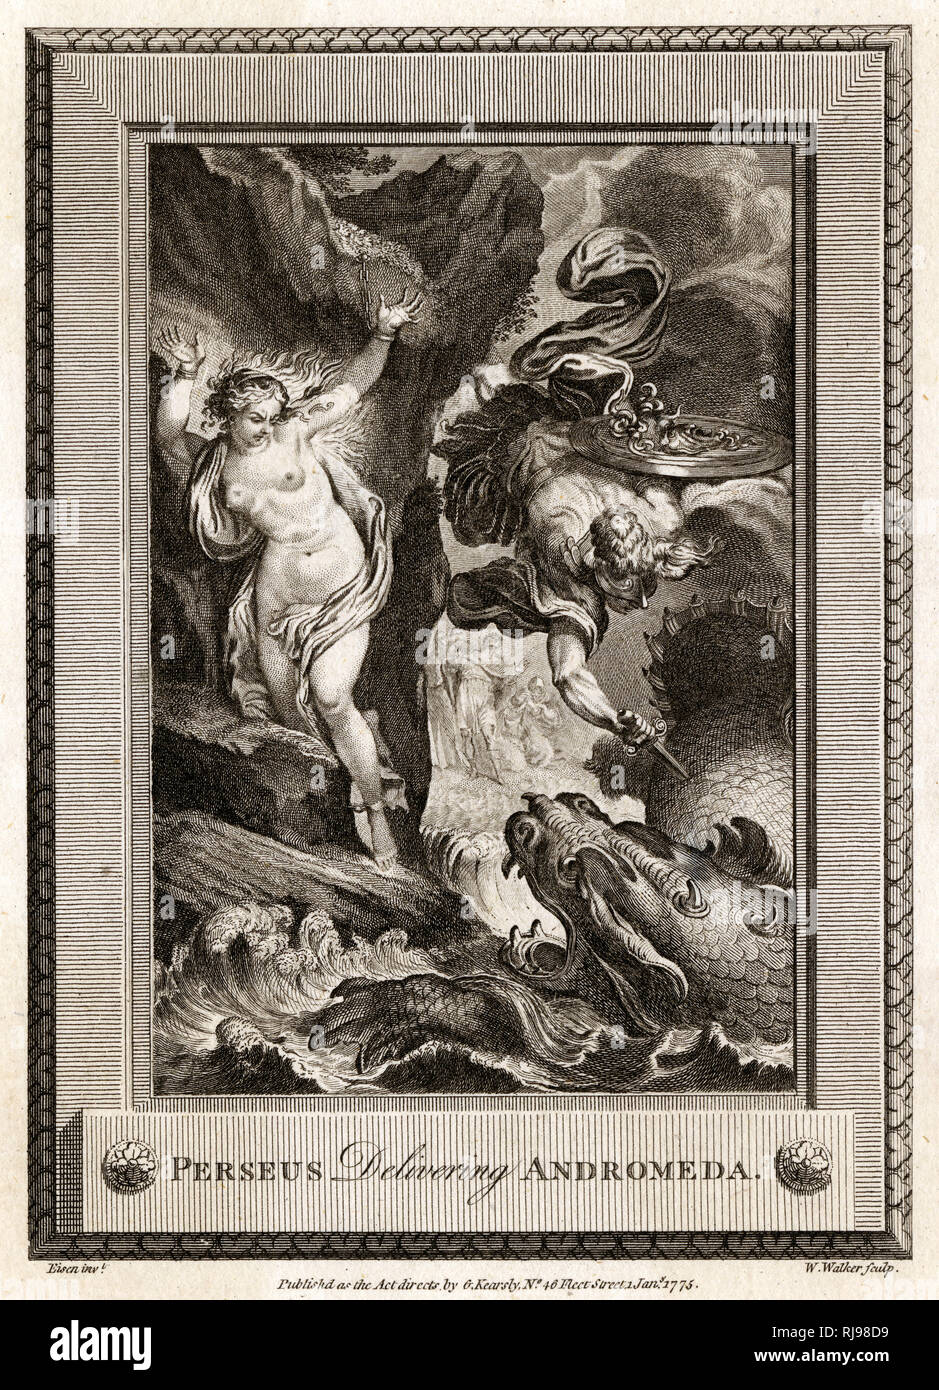 Perseus rescues Andromeda from a fearsome monster which had planned on eating her - Stock Image